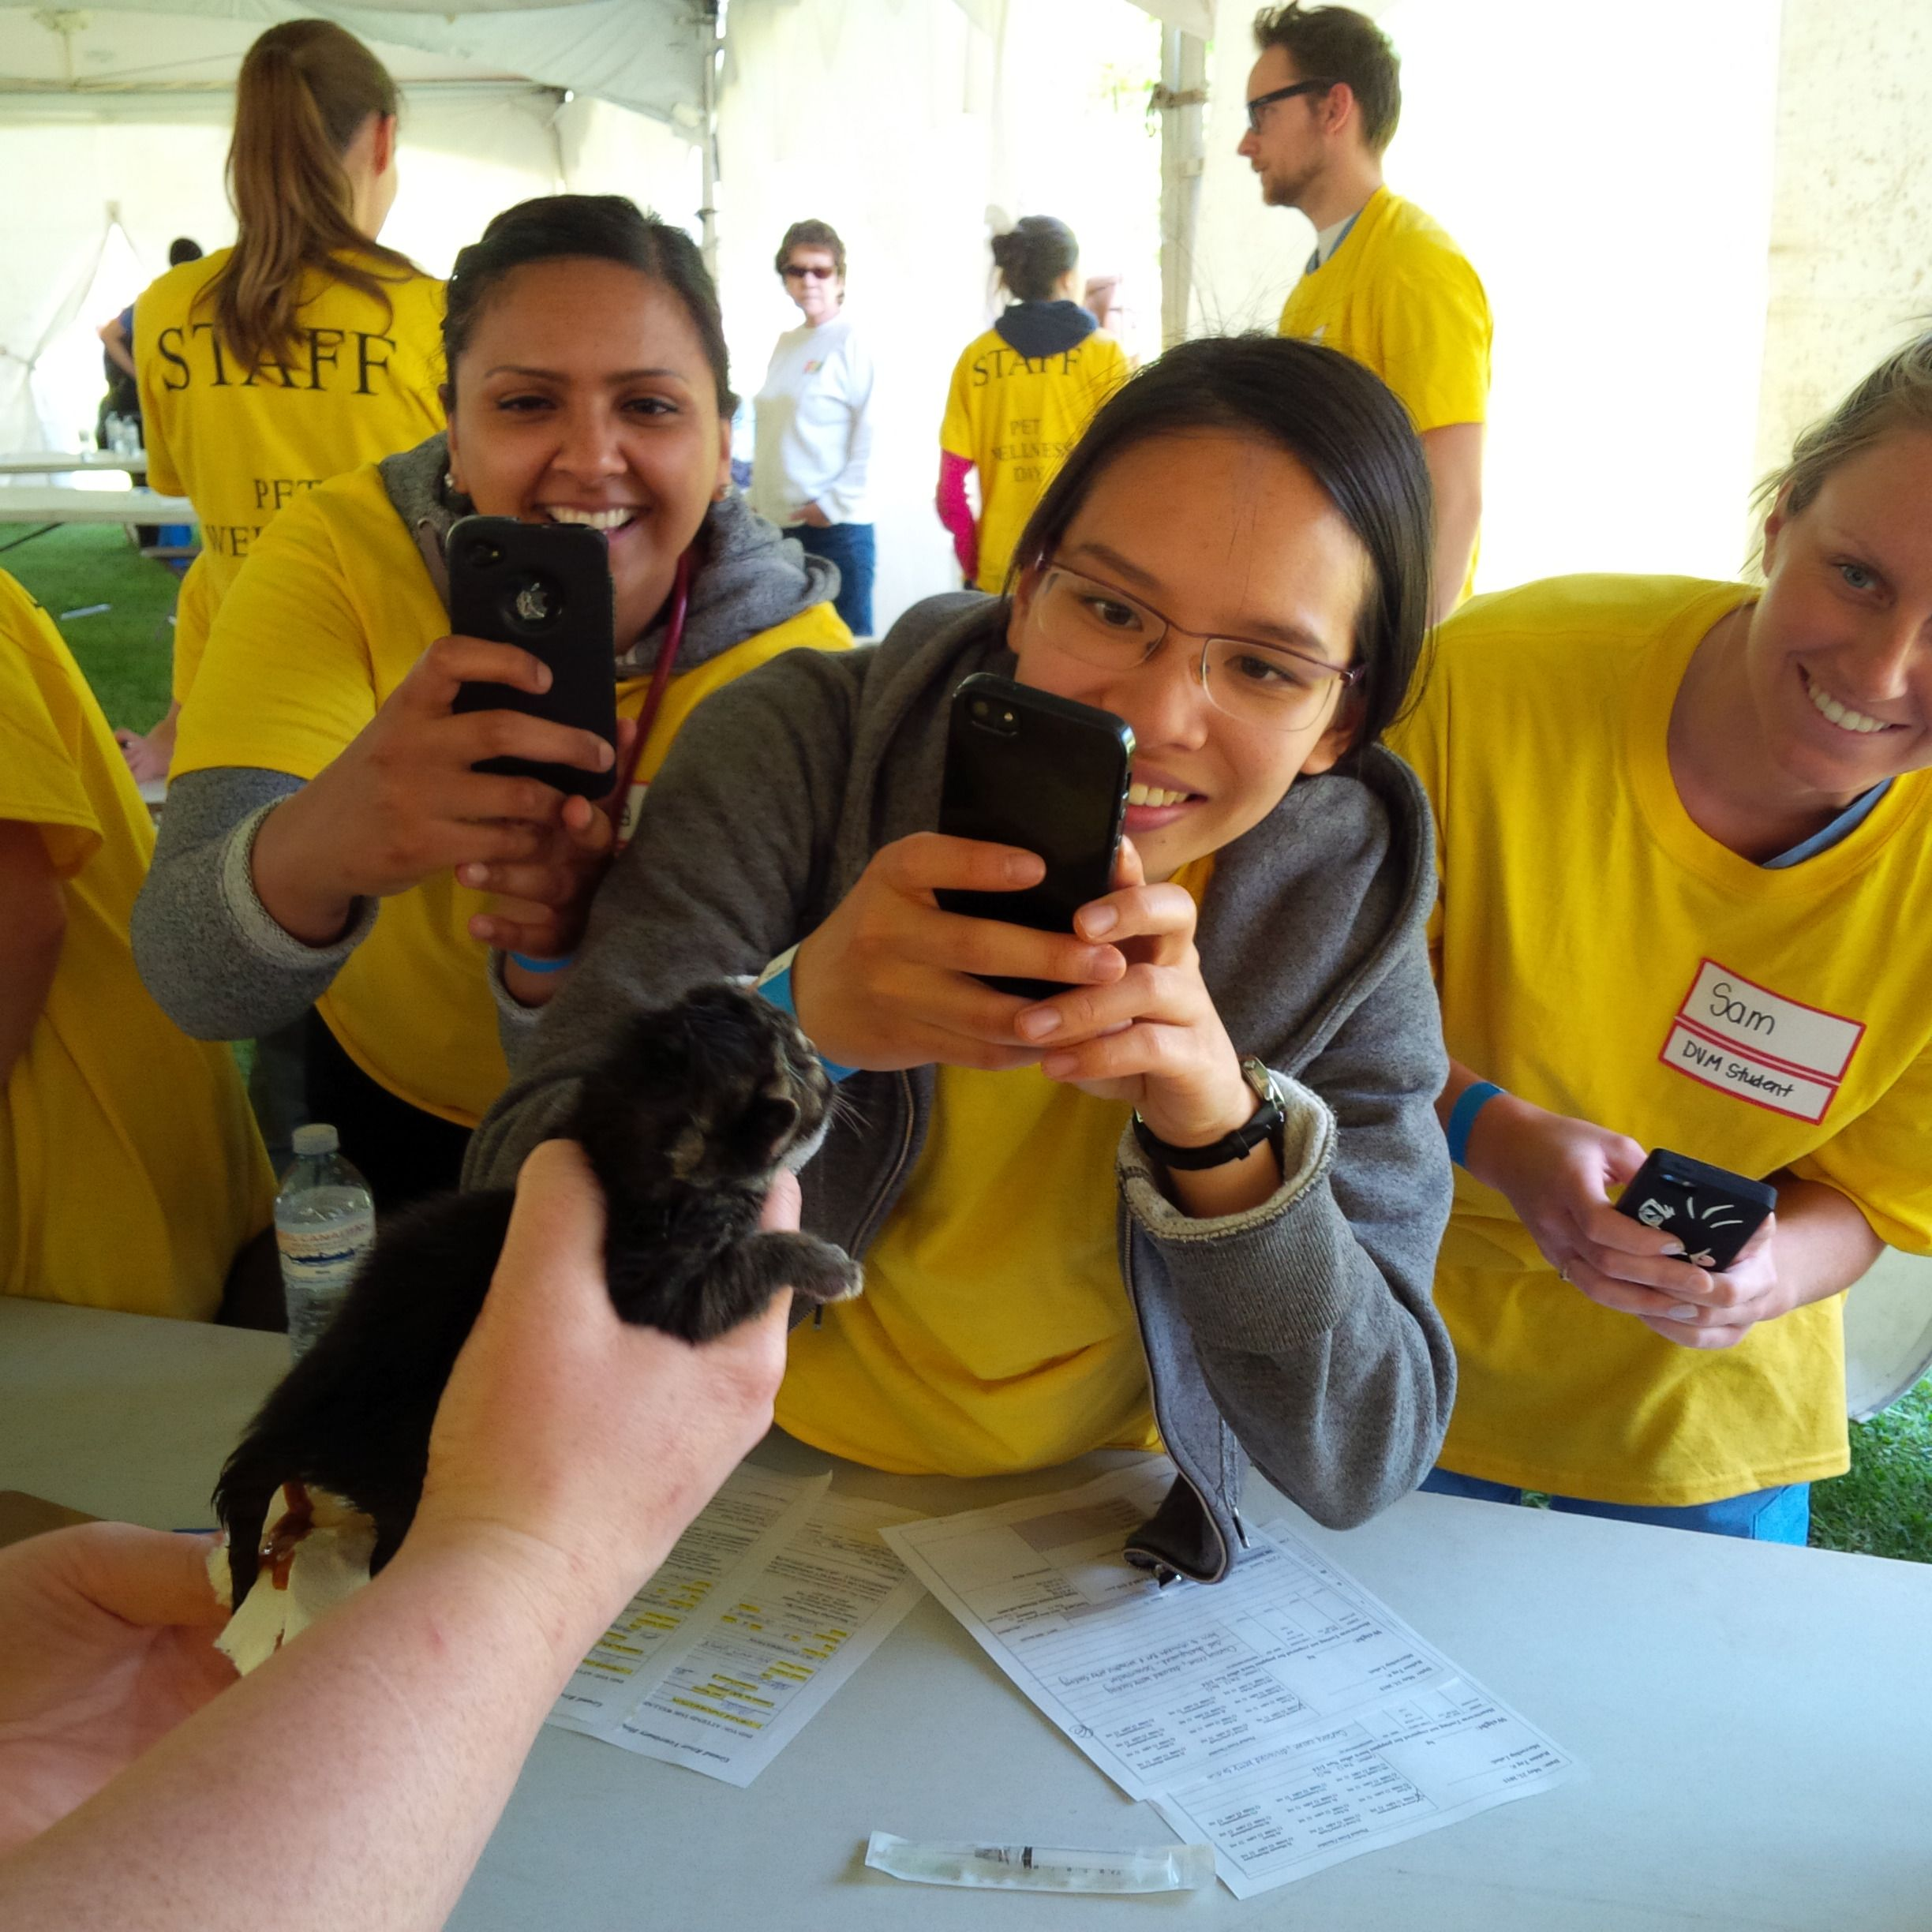 Vet students taking photos of a fourdayold kitten, the